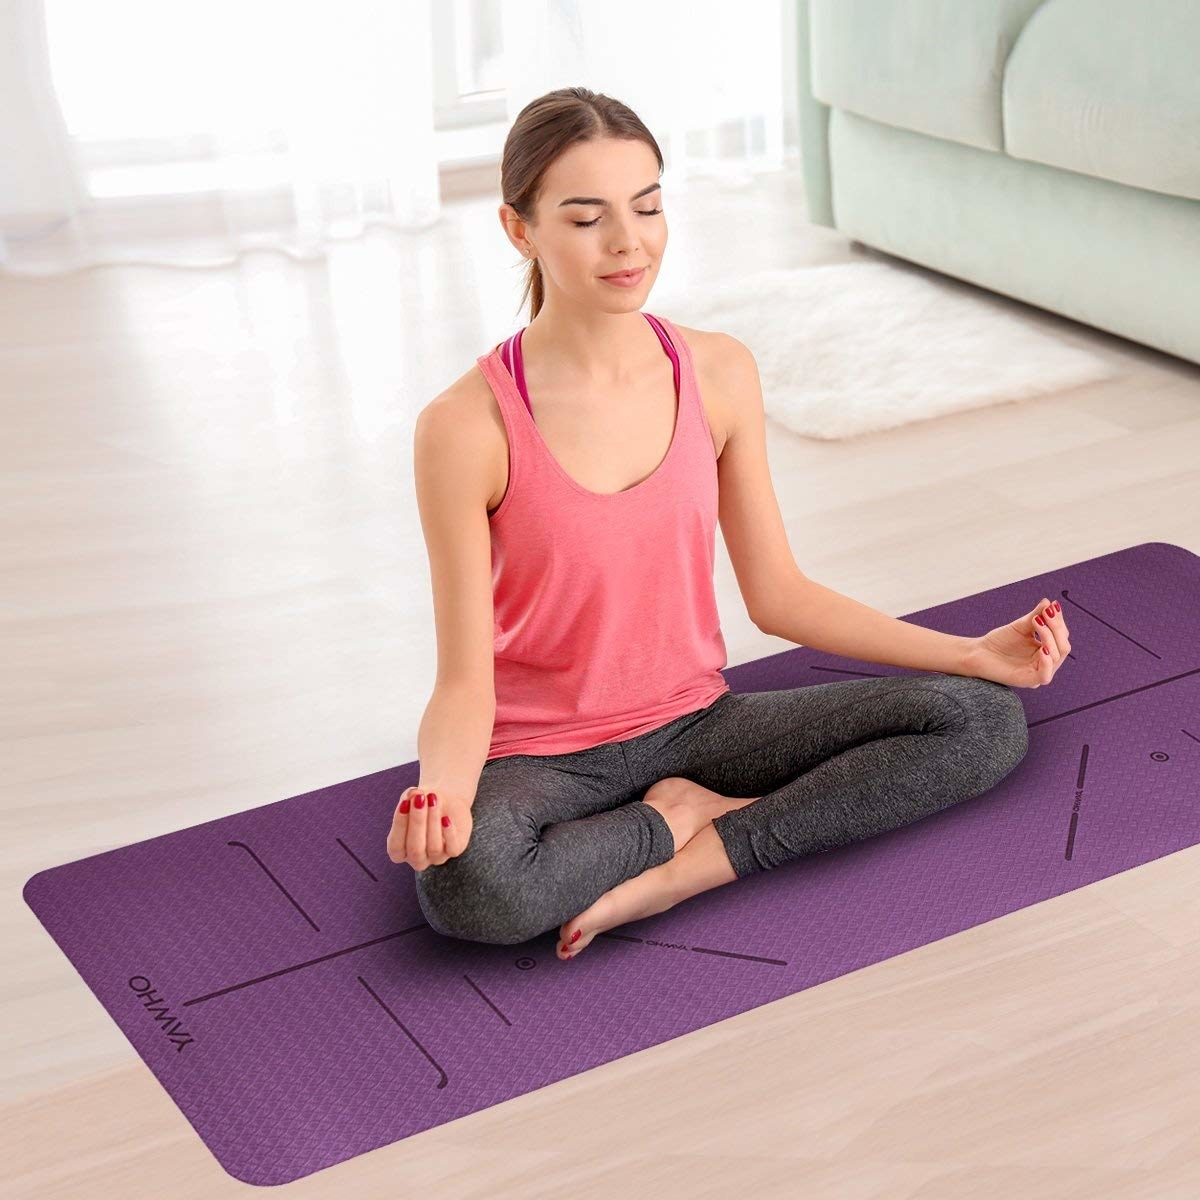 A person finding their zen on the yoga mat